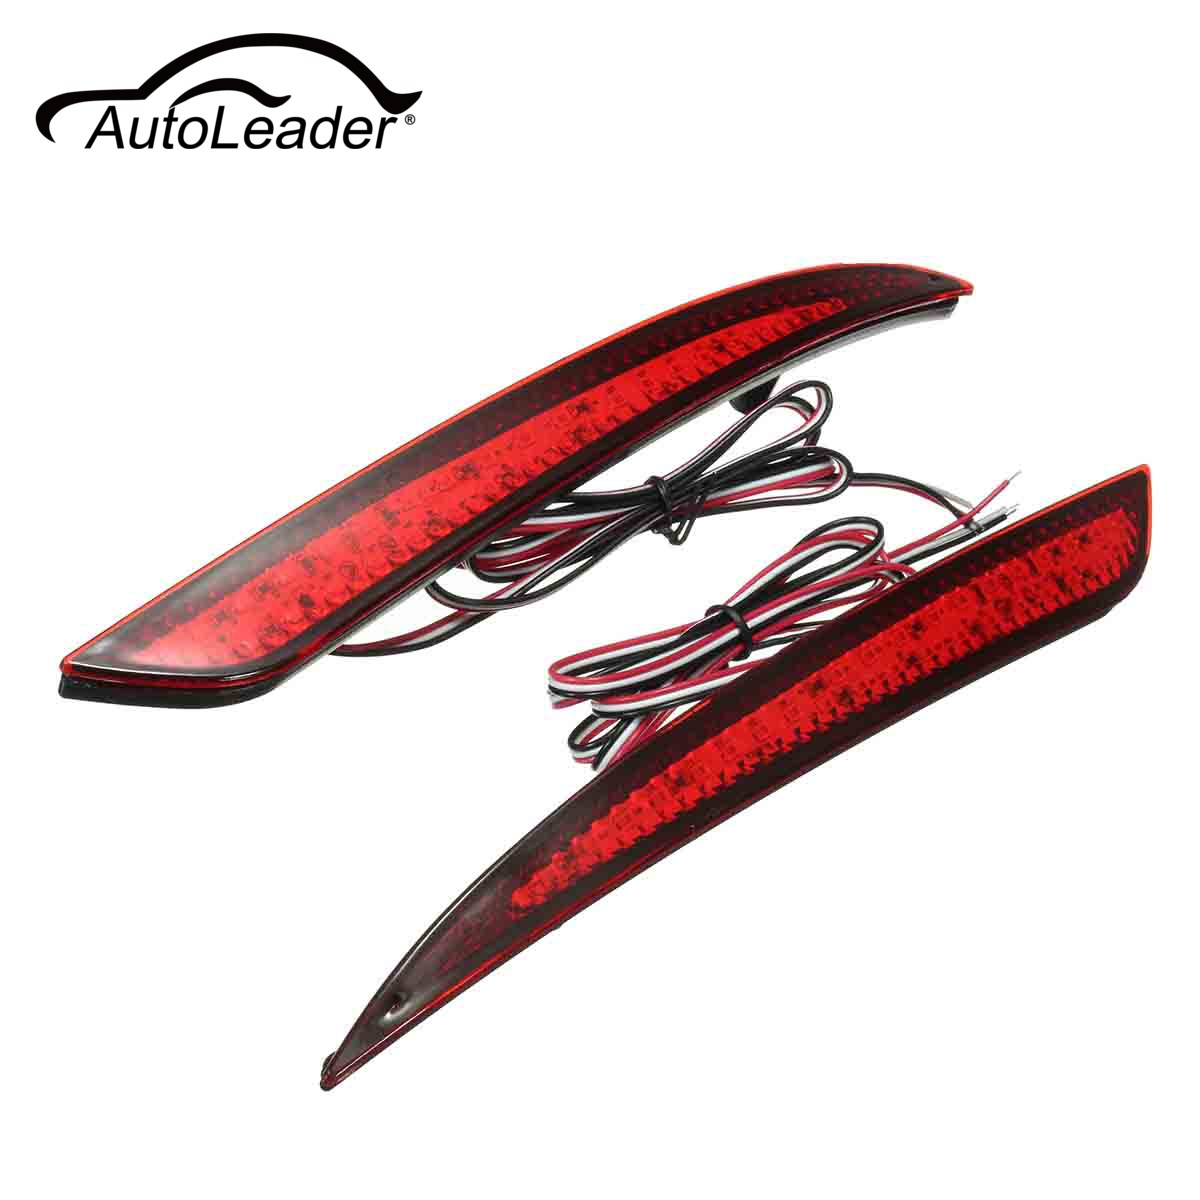 AutoLeader 1Pair Red Len Reflector Rear Tail LED Bumper Light Brake Stop Lamp Fog Light For Ford/Fusion 2013-2015 12V 30 LEDs dongzhen fit for nissan bluebird sylphy almera led red rear bumper reflectors light night running brake warning lights lamp